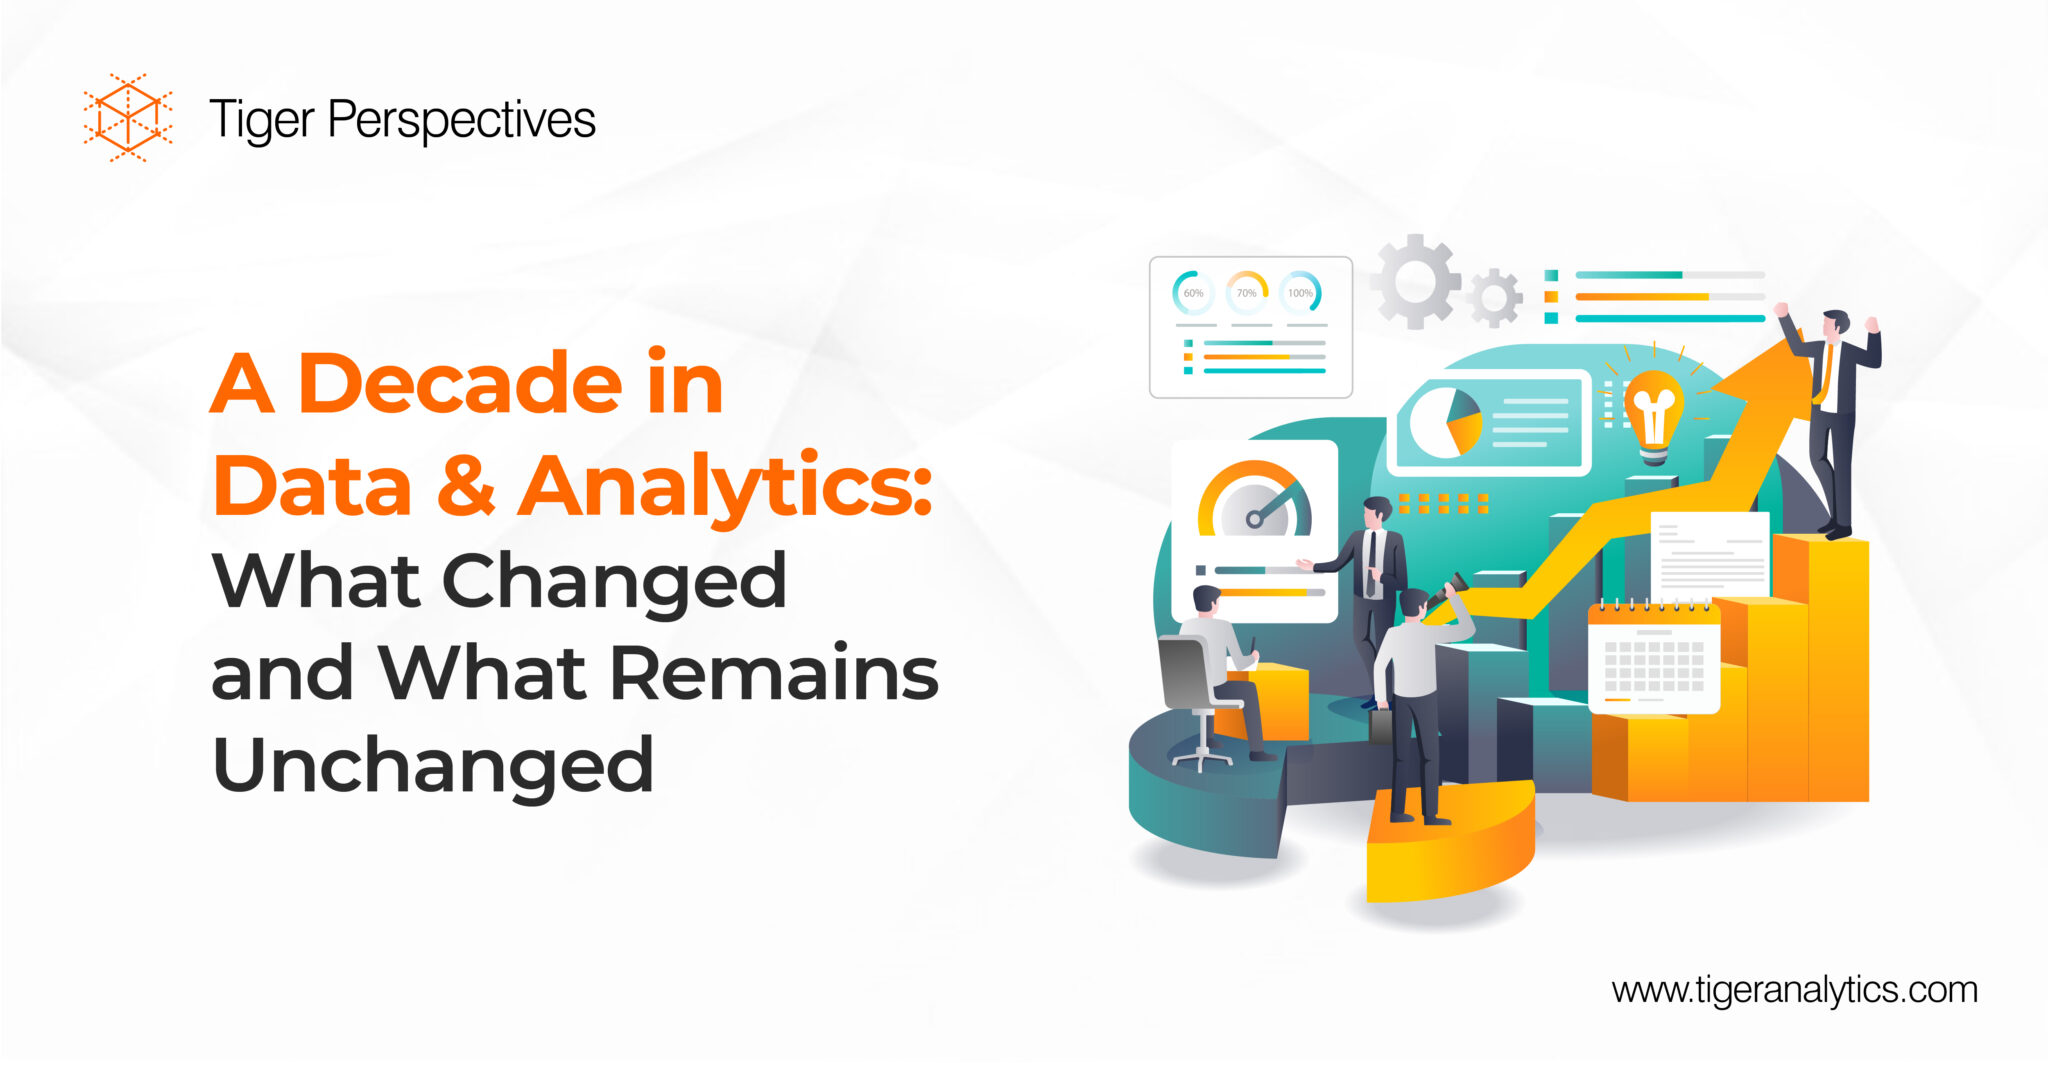 A Decade in Data & Analytics: What Changed and What Remains Unchanged